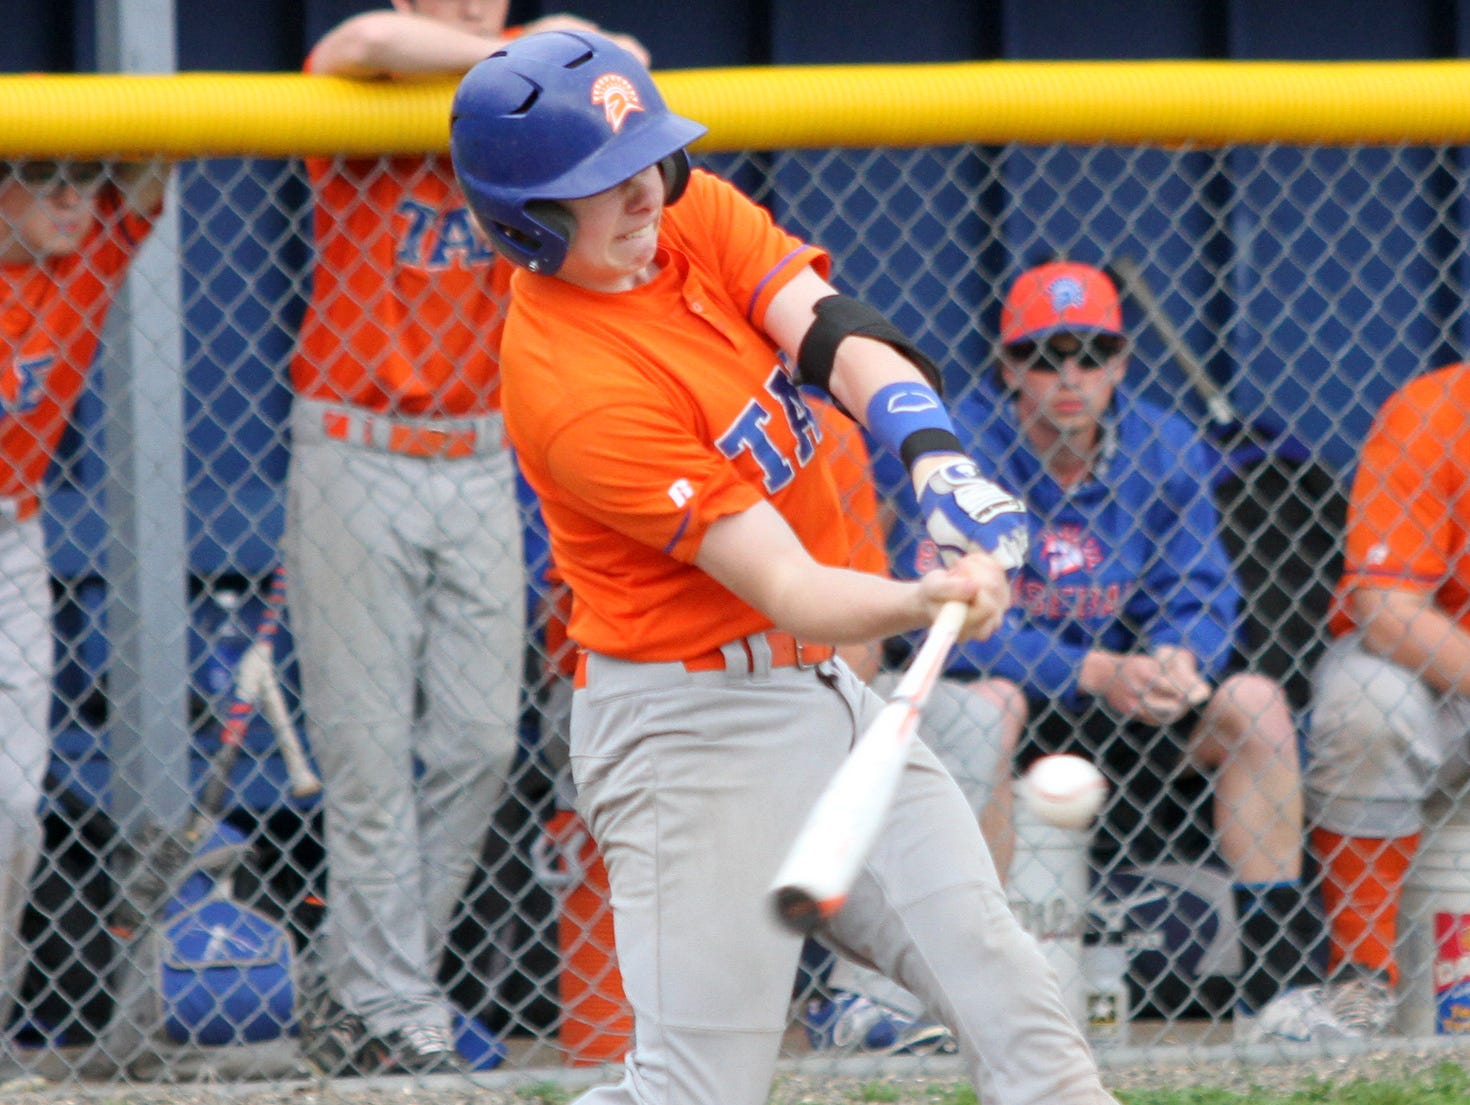 Edison's Josh Cosgrove connects for a hit against Notre Dame during the 2015 season.